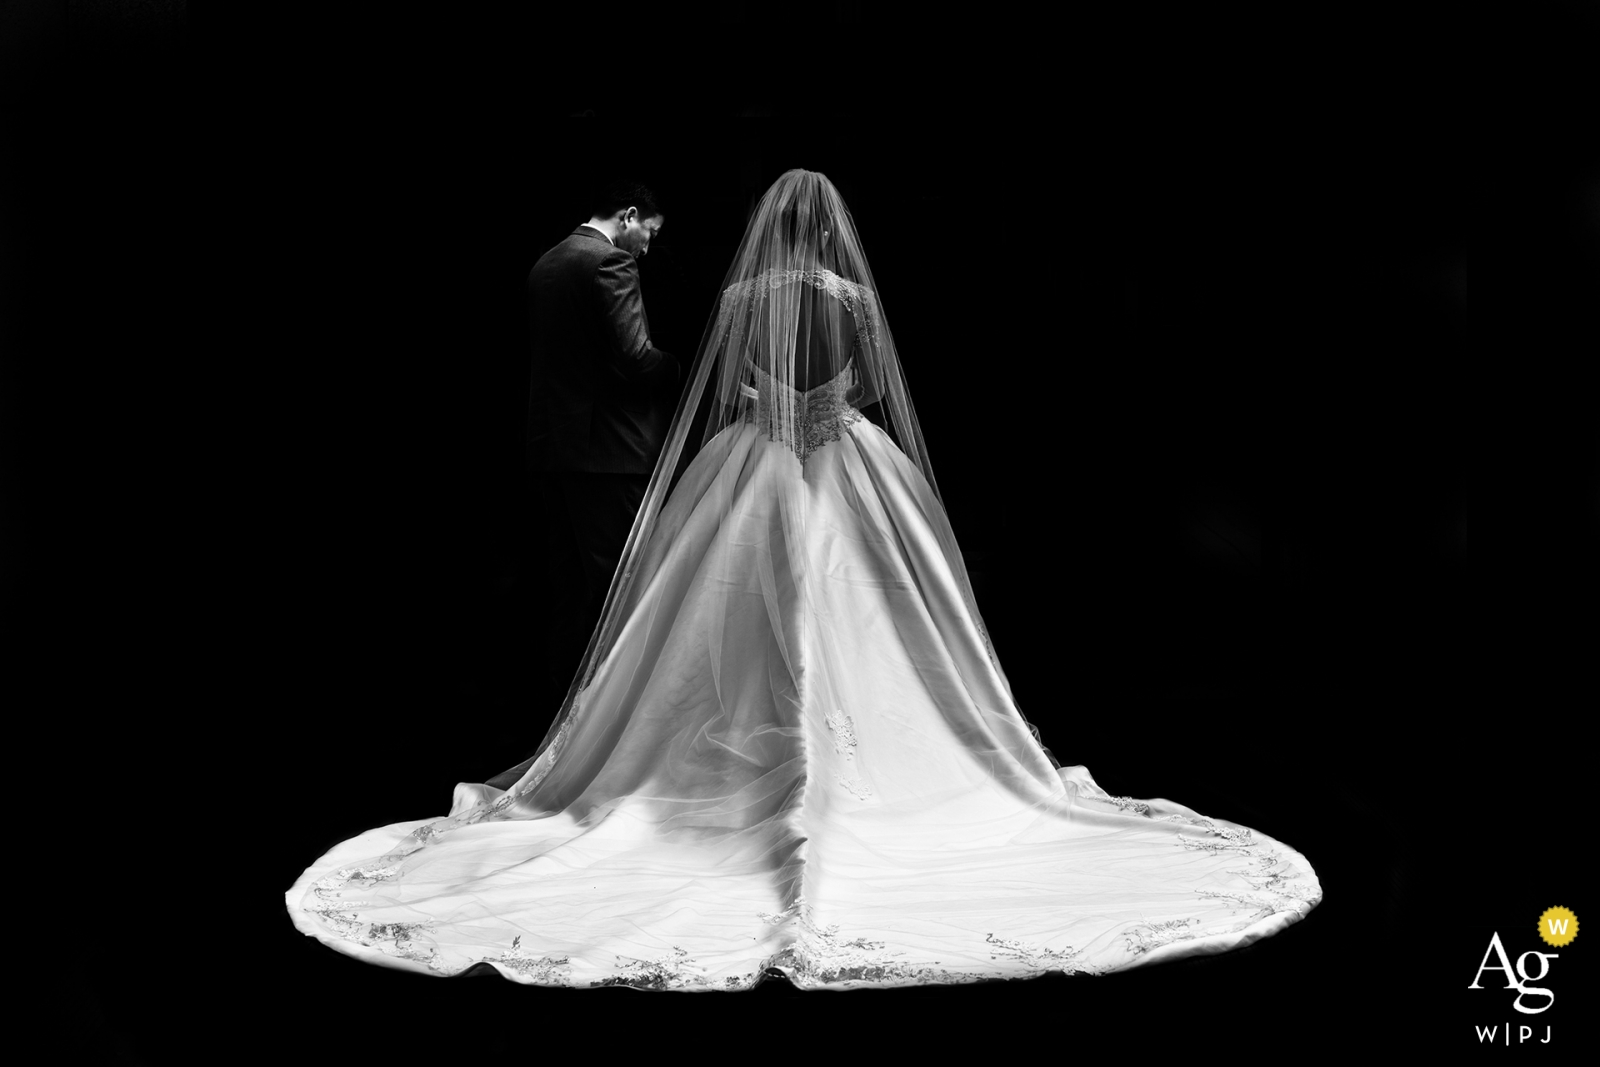 Shaanxi hotel photo in black and white of the Bride and father